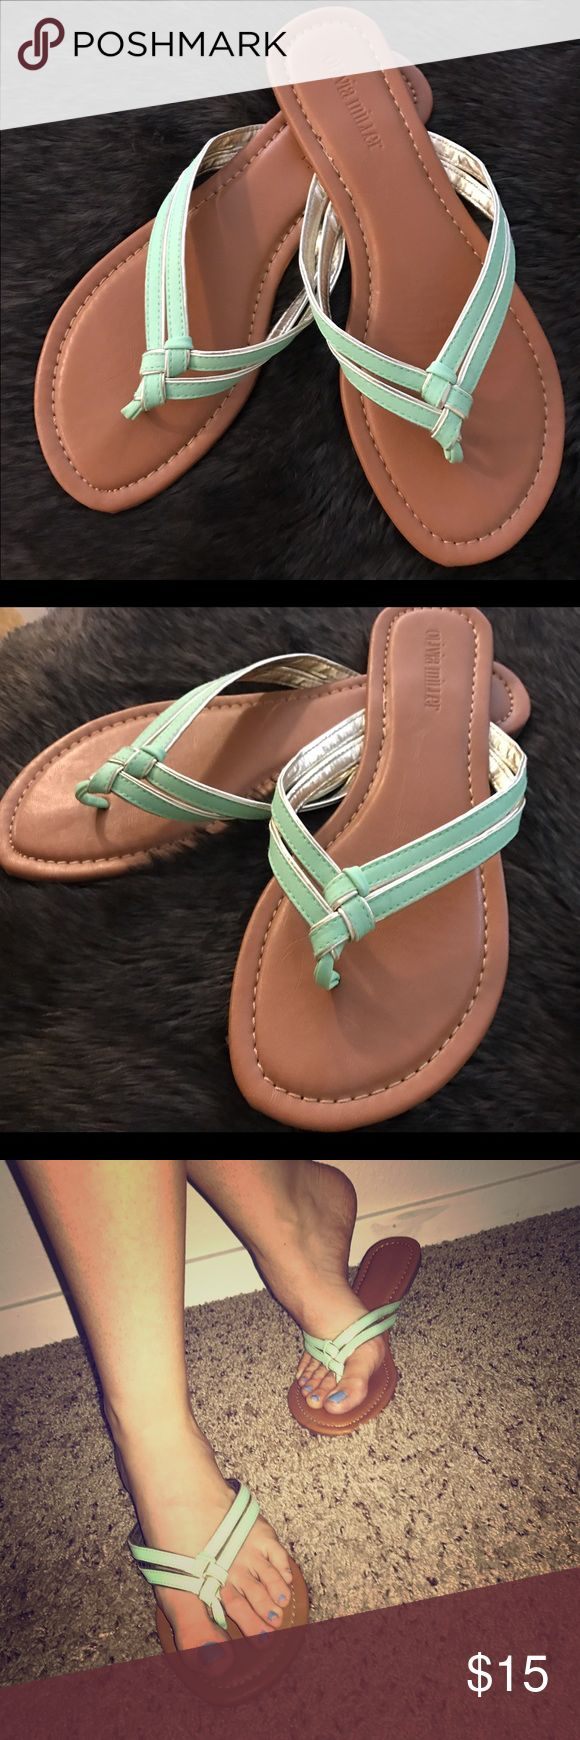 Seafoam & Gold Flip Flop Sandals Sz 9 Seafoam and Gold Double Strap W/ weave knot Flip Flop Sandals Sz 9 Preowned in great condition, clean and appear like new, worn once. Shoes Sandals